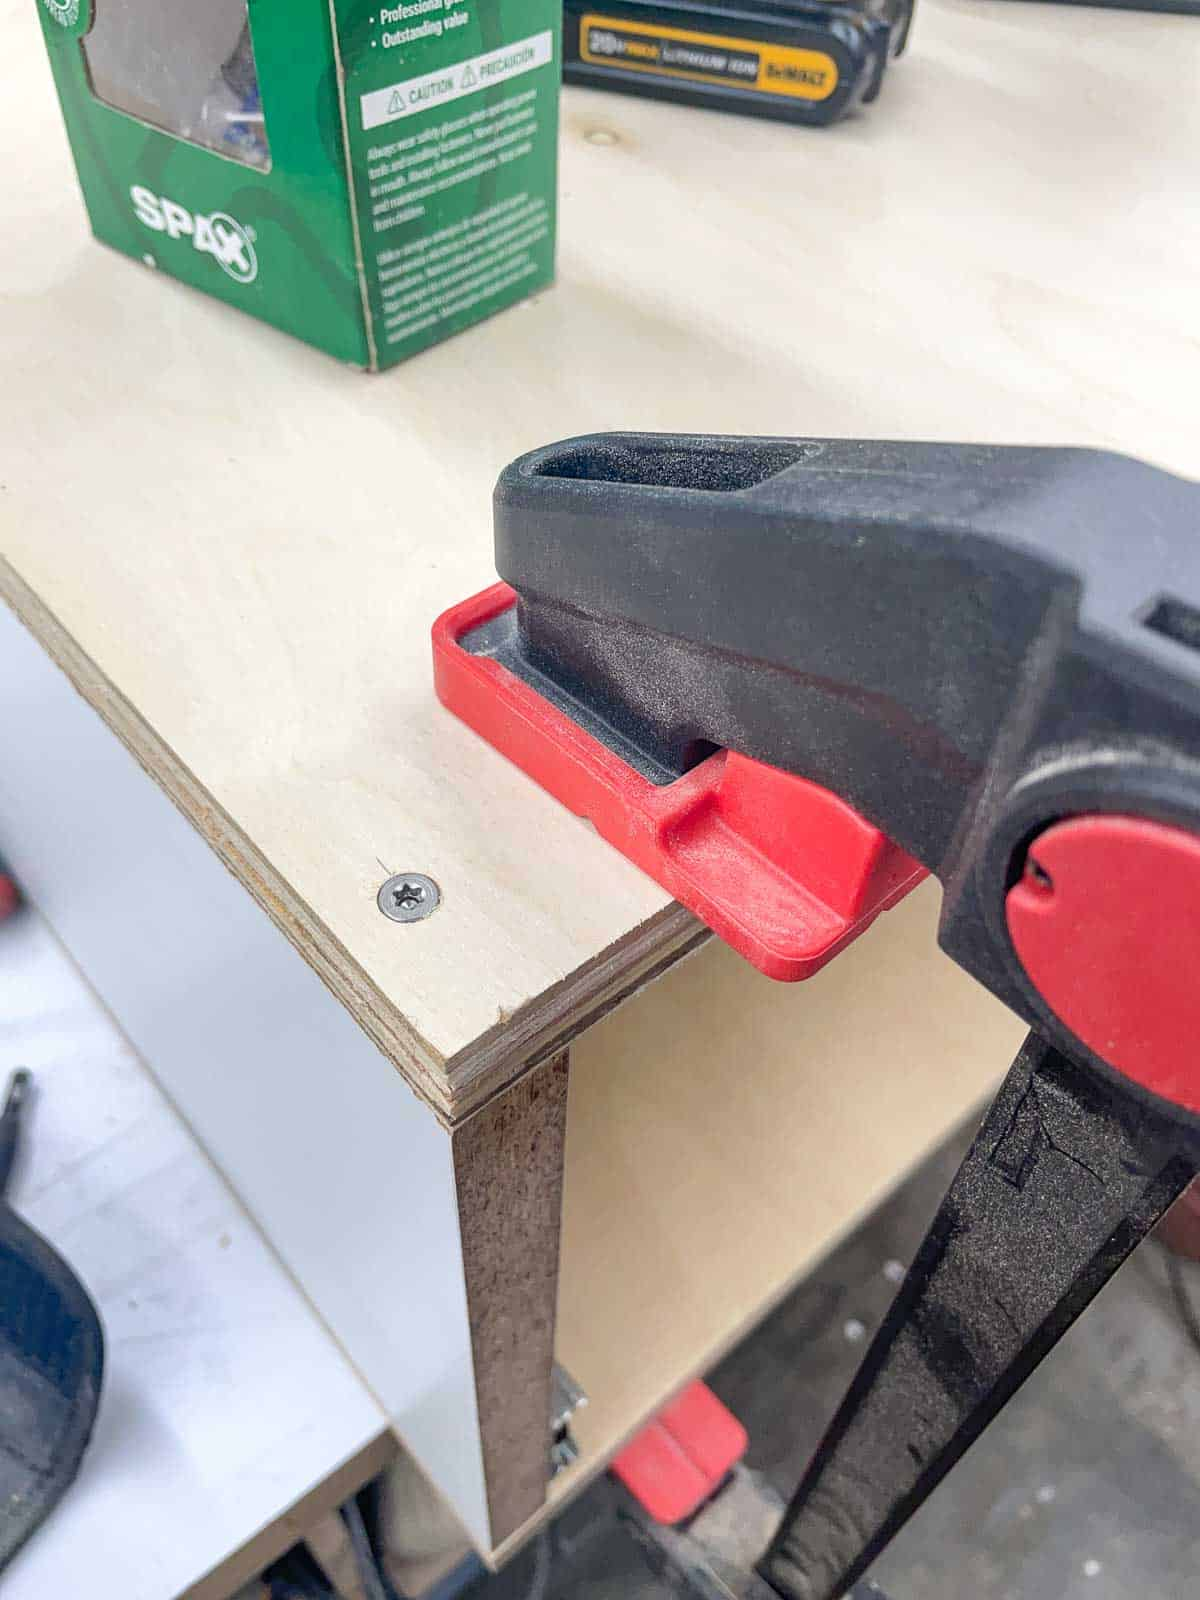 countersunk screws in top of planer stand with clamp holding pieces in place